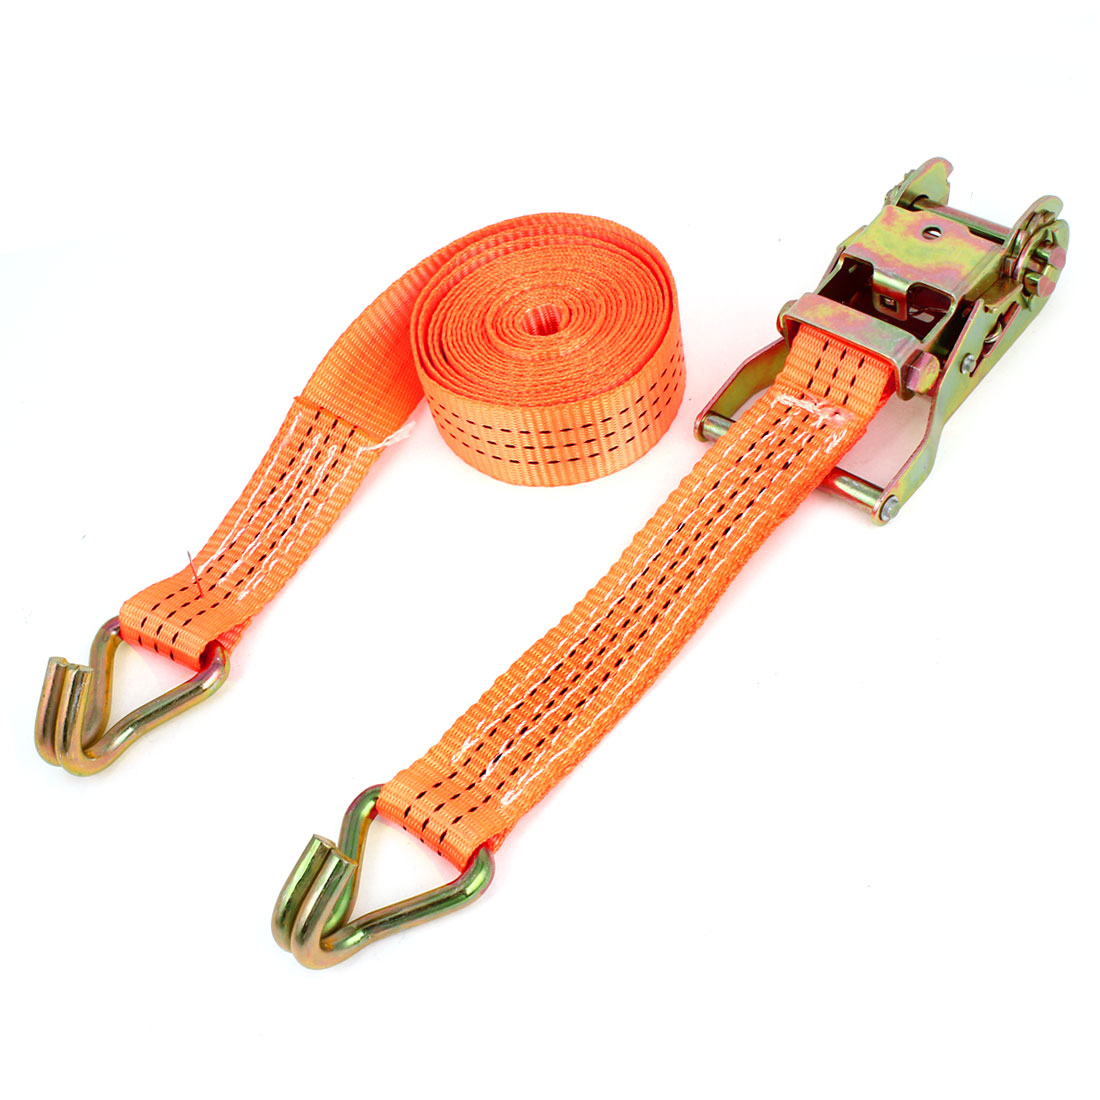 Luggage Cargo Binding Metal J Hooks Ratchet Tie Down Strap 3.5M 11ft Orange